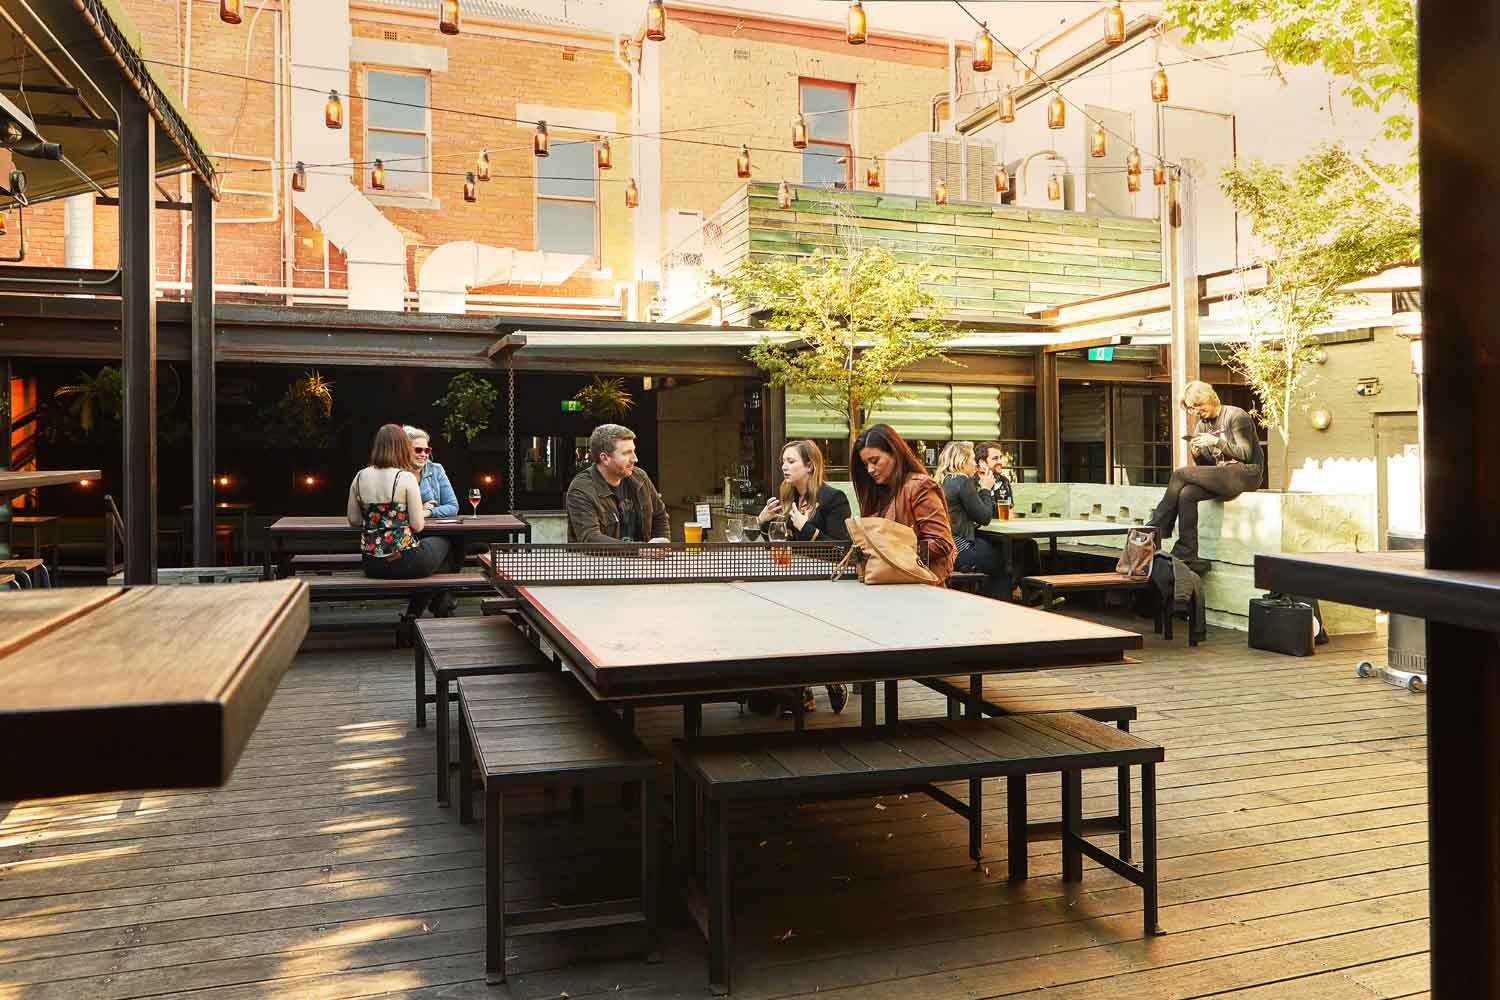 The-National-Hotel-Bar-Richmond-Bars-Melbourne-Cocktail-Outdoor-Beergarden-Top-Best-Good-Cool-09